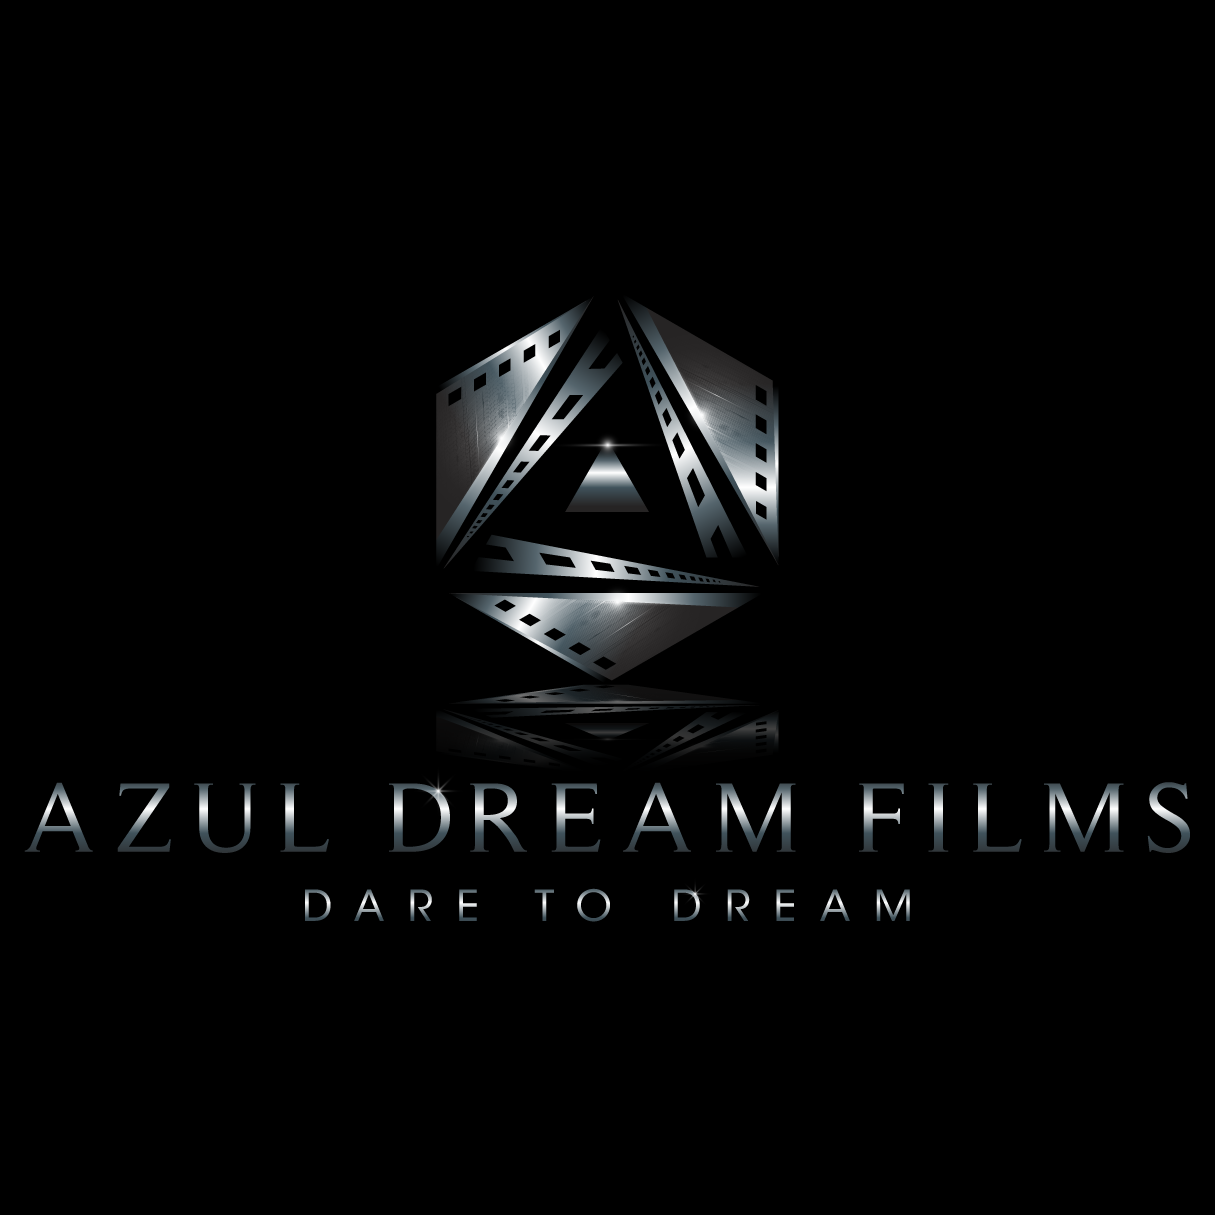 Azul Dream Films